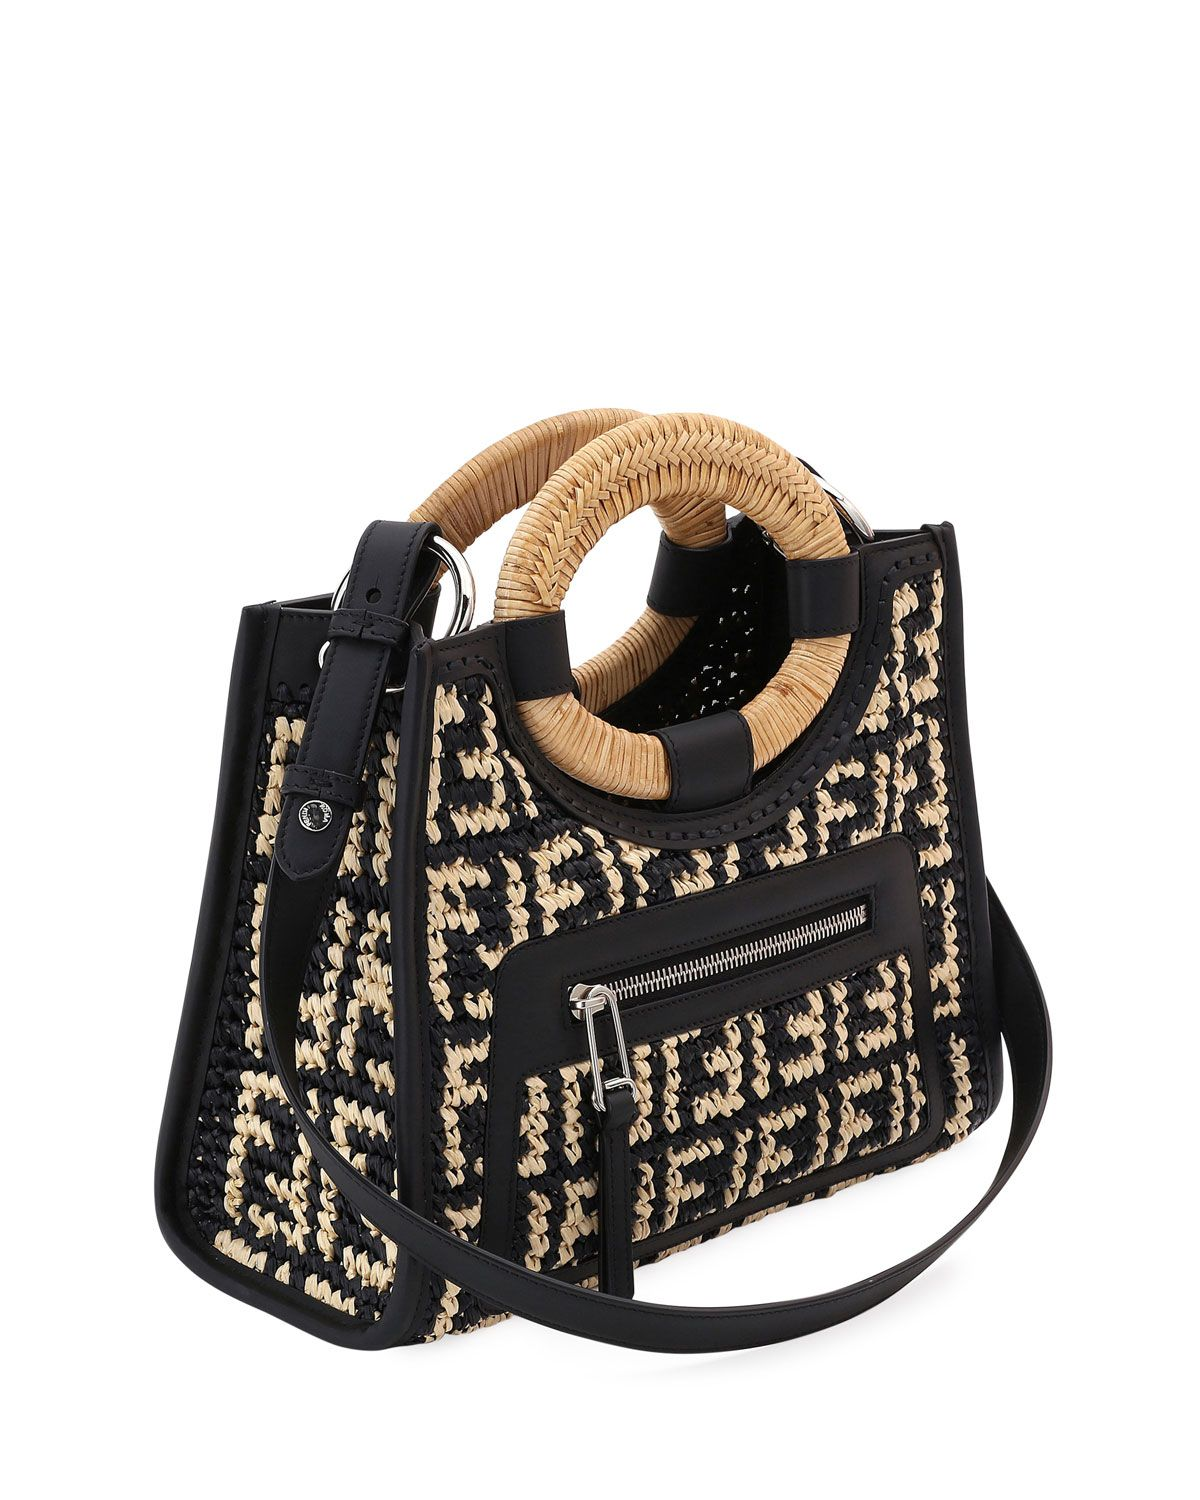 333c04c80 Fendi Runaway Small FF Raffia Shop Tote Bag in 2019 | s t y l e ...